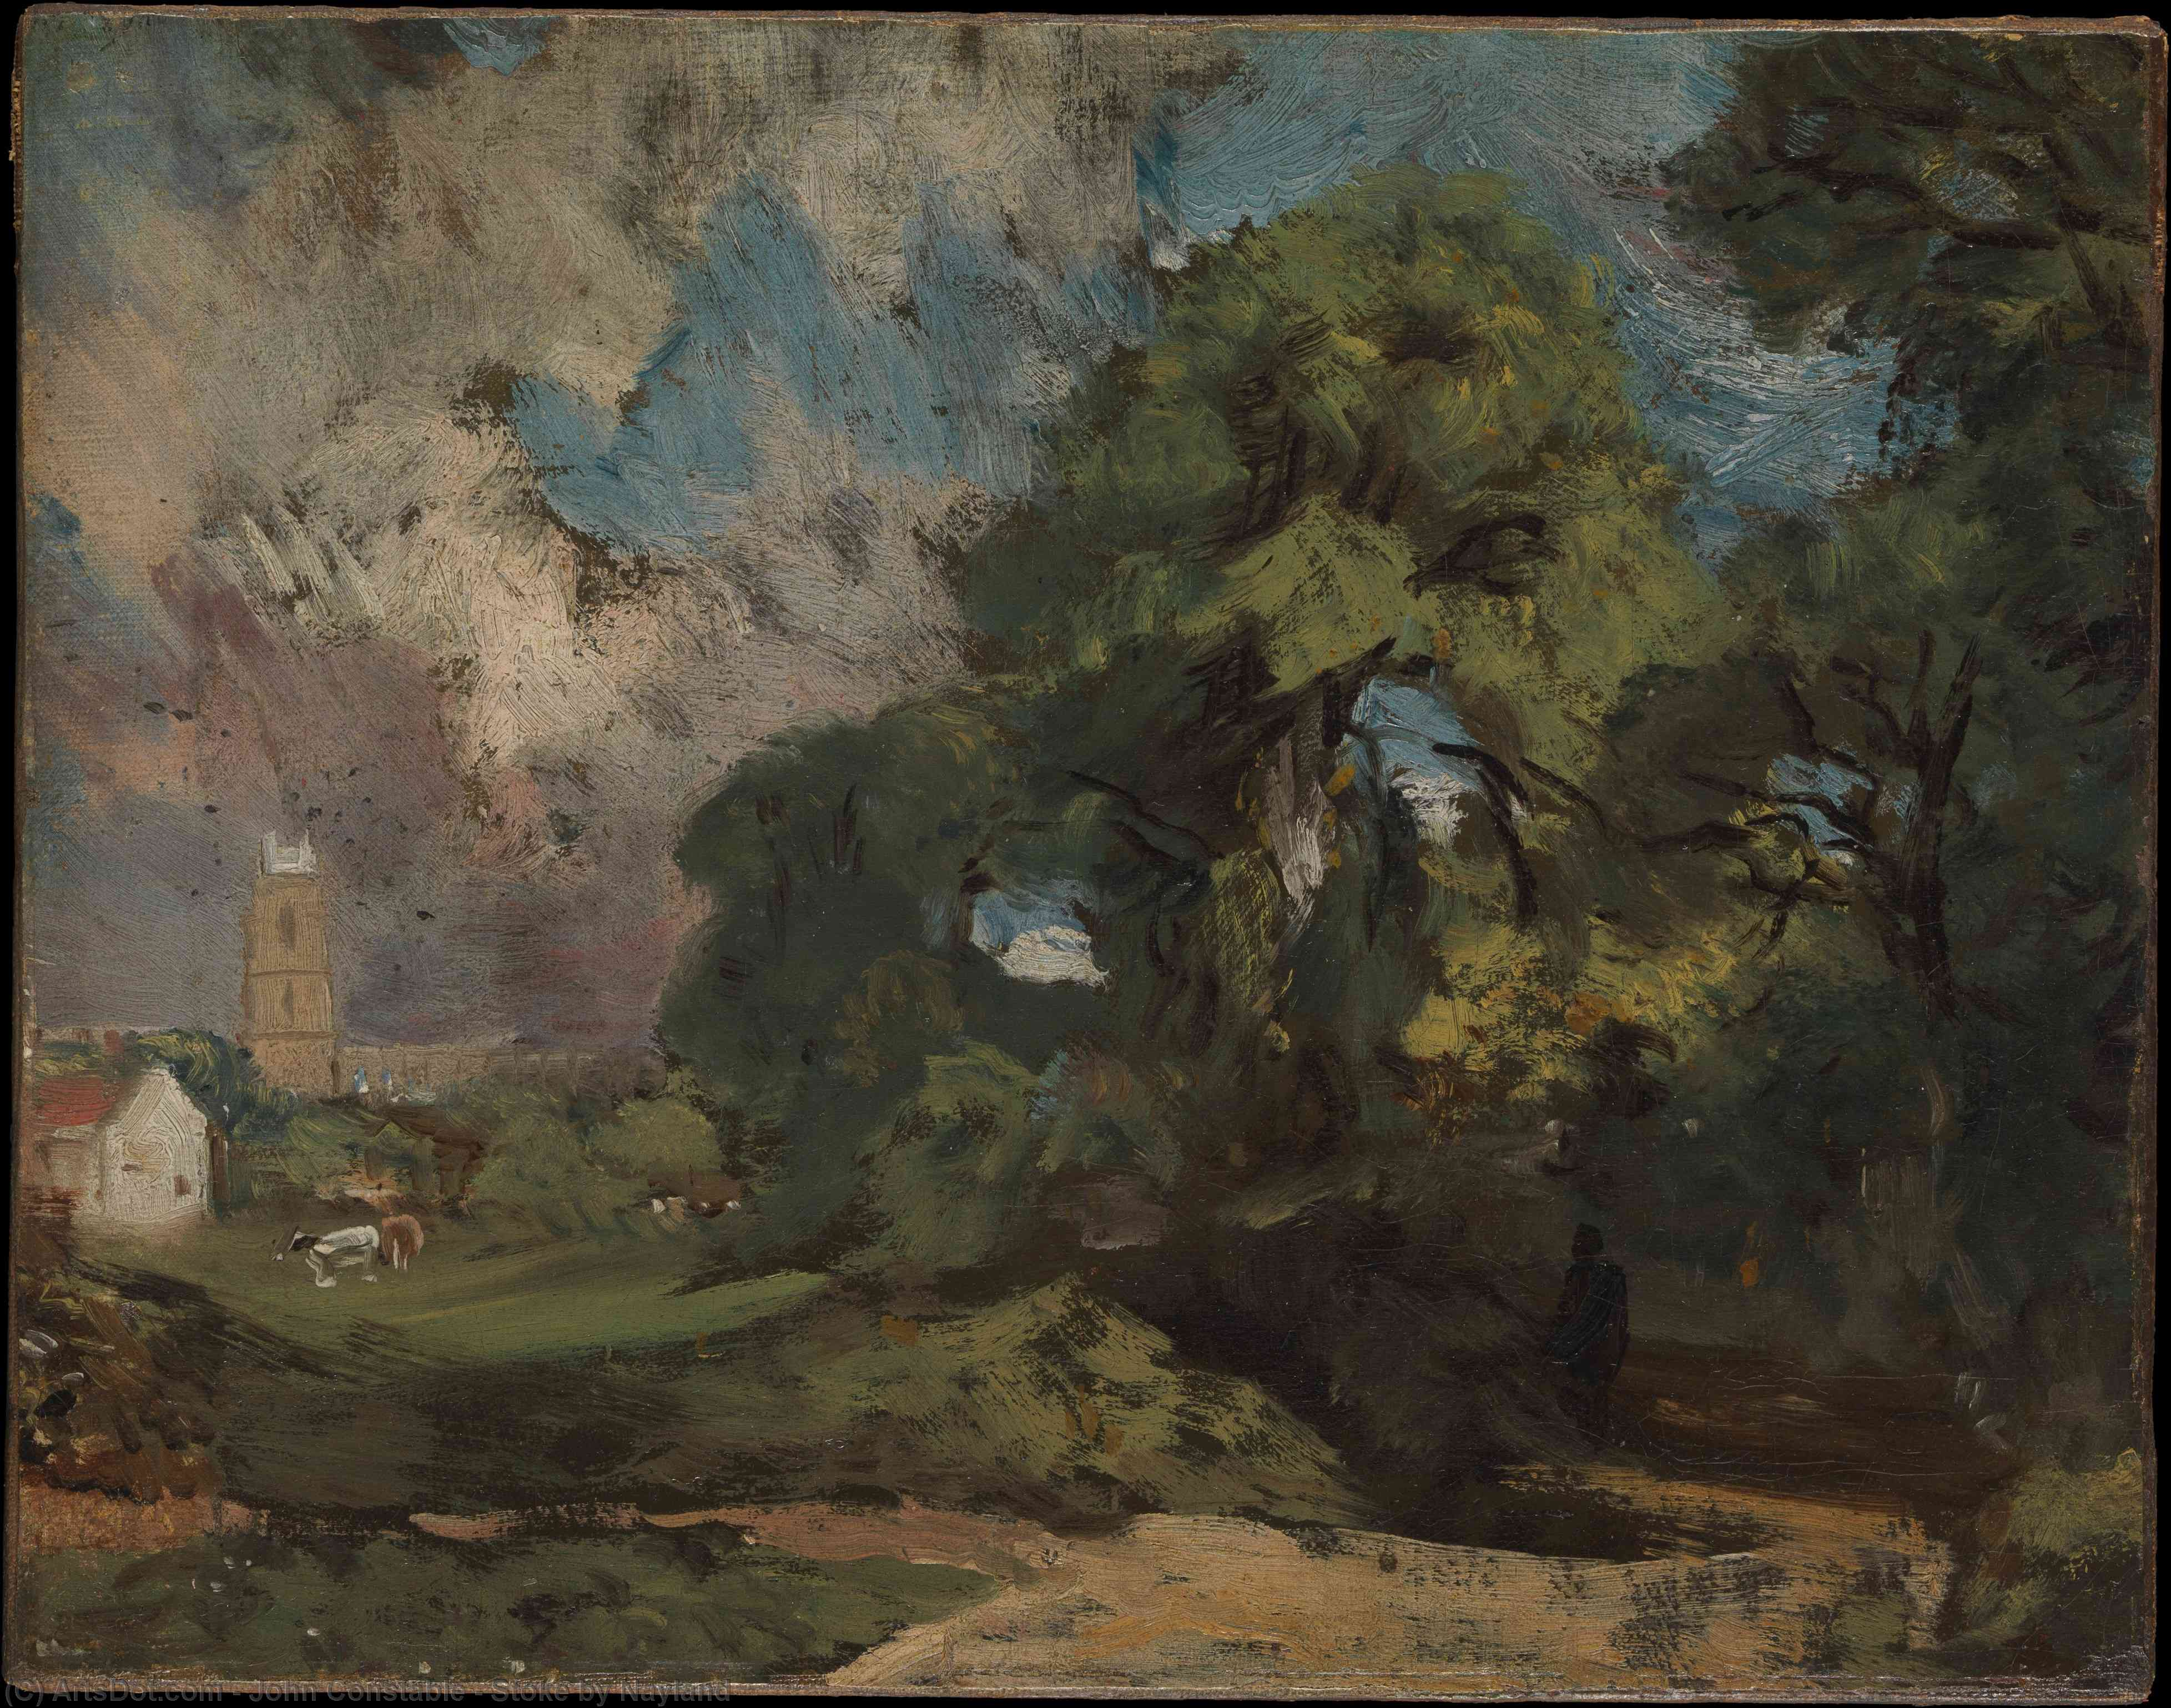 Buy Museum Art Reproductions : Stoke by Nayland, 1810 by John Constable (1776-1837, United Kingdom) | ArtsDot.com